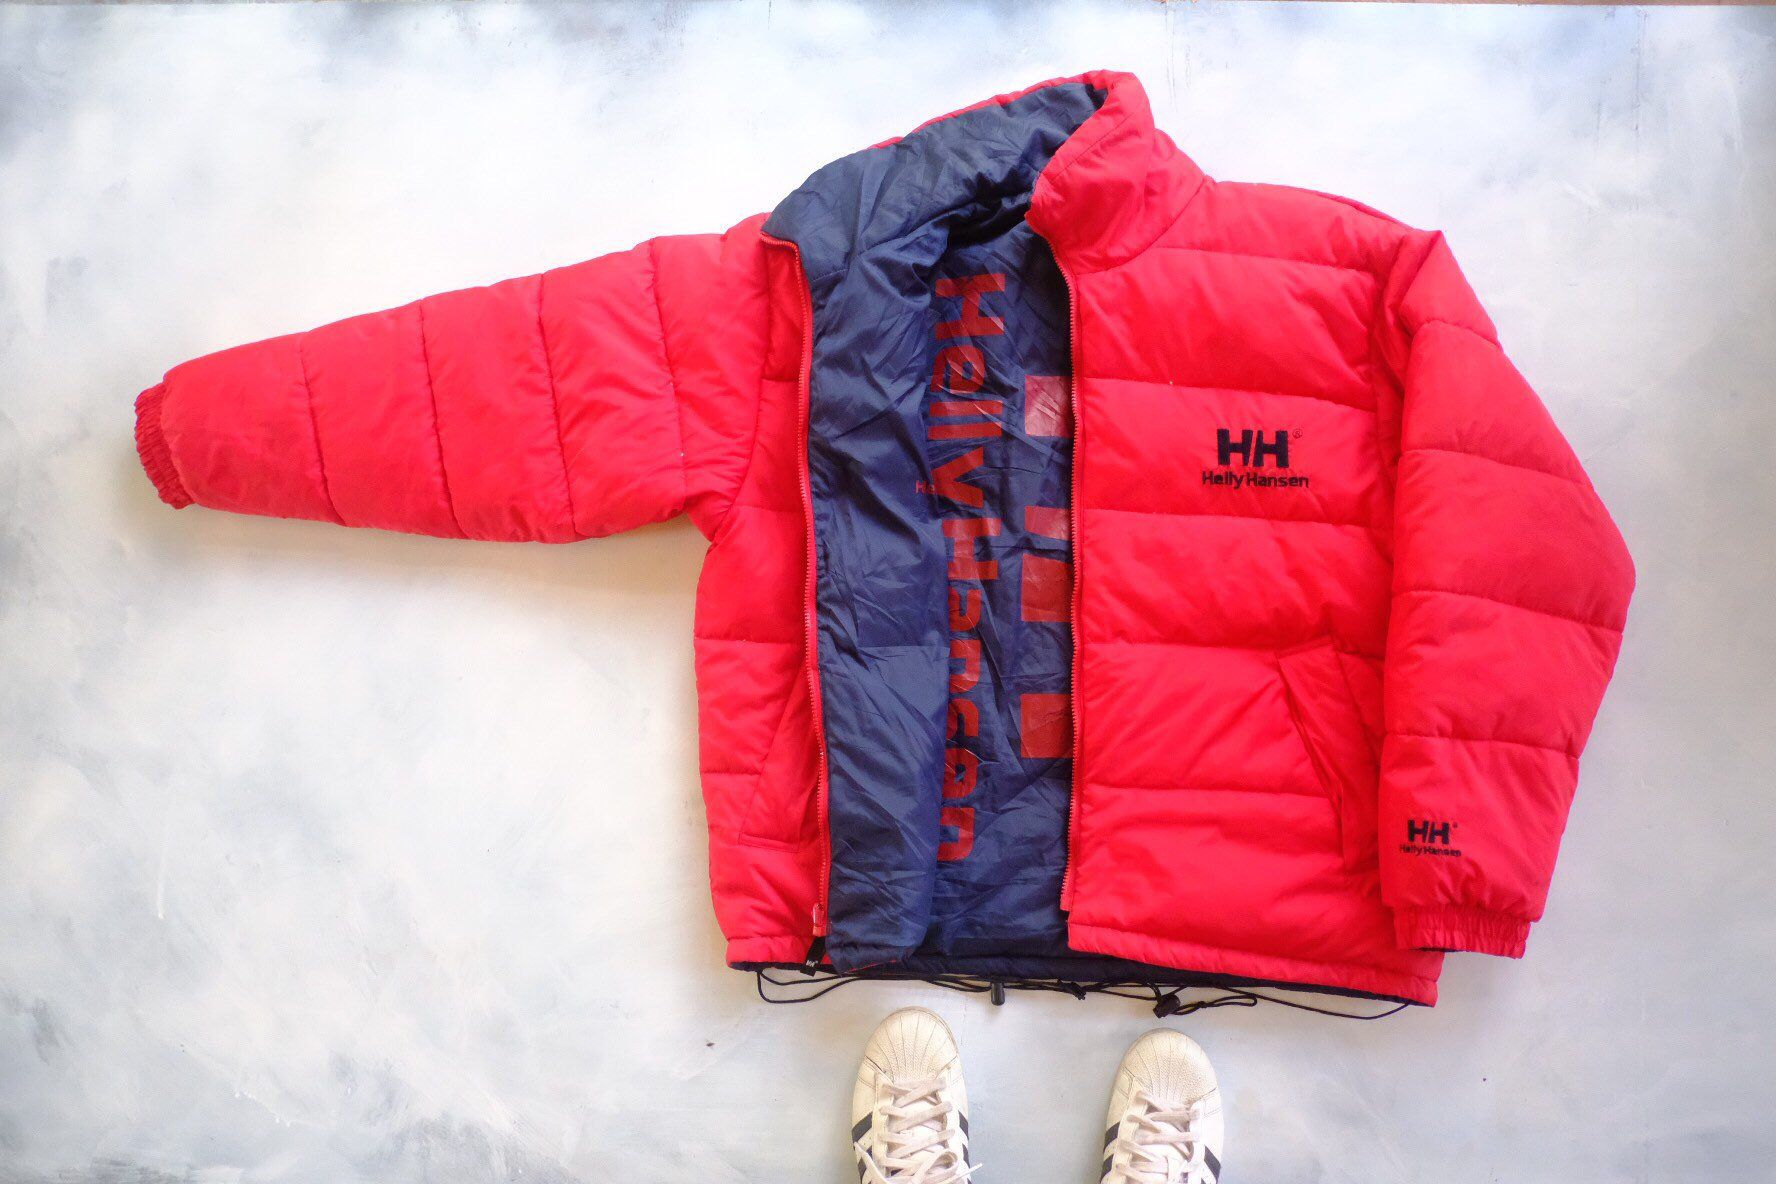 Rare Helly Hansen Puffer Goose Down Jacket Red And Dark Etsy Jackets Down Jacket Vintage Clothing Men [ 1184 x 1776 Pixel ]